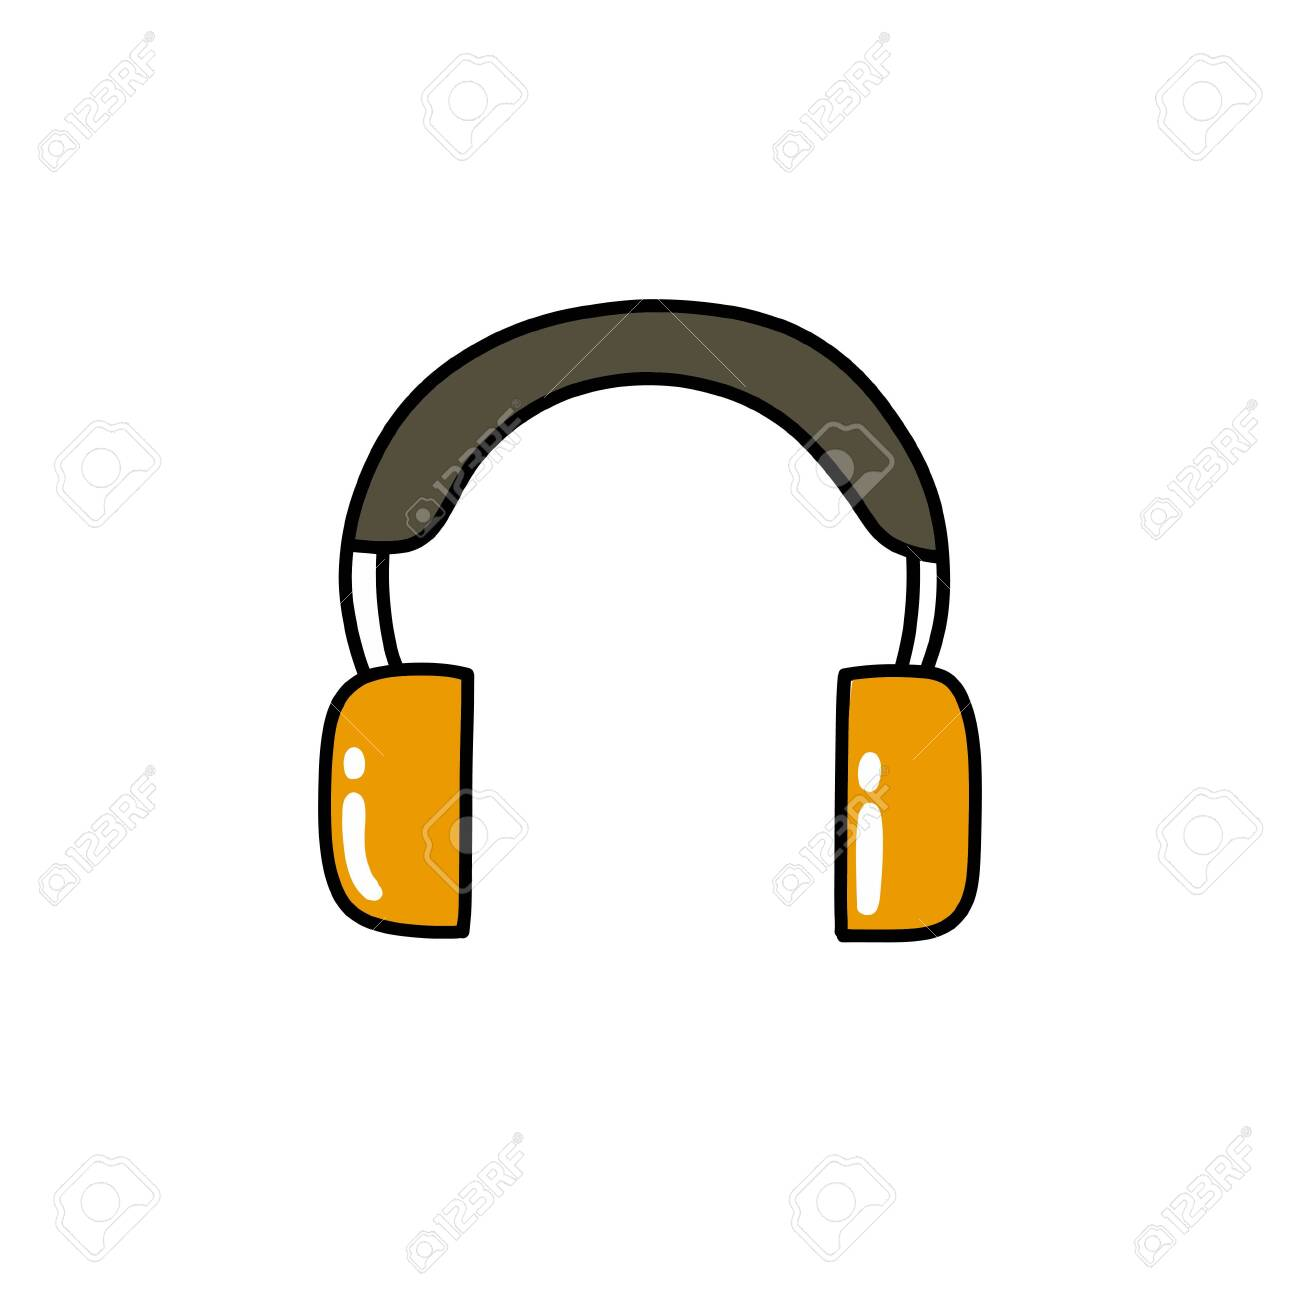 protective ear muffs doodle icon, vector color illustration - 149043390